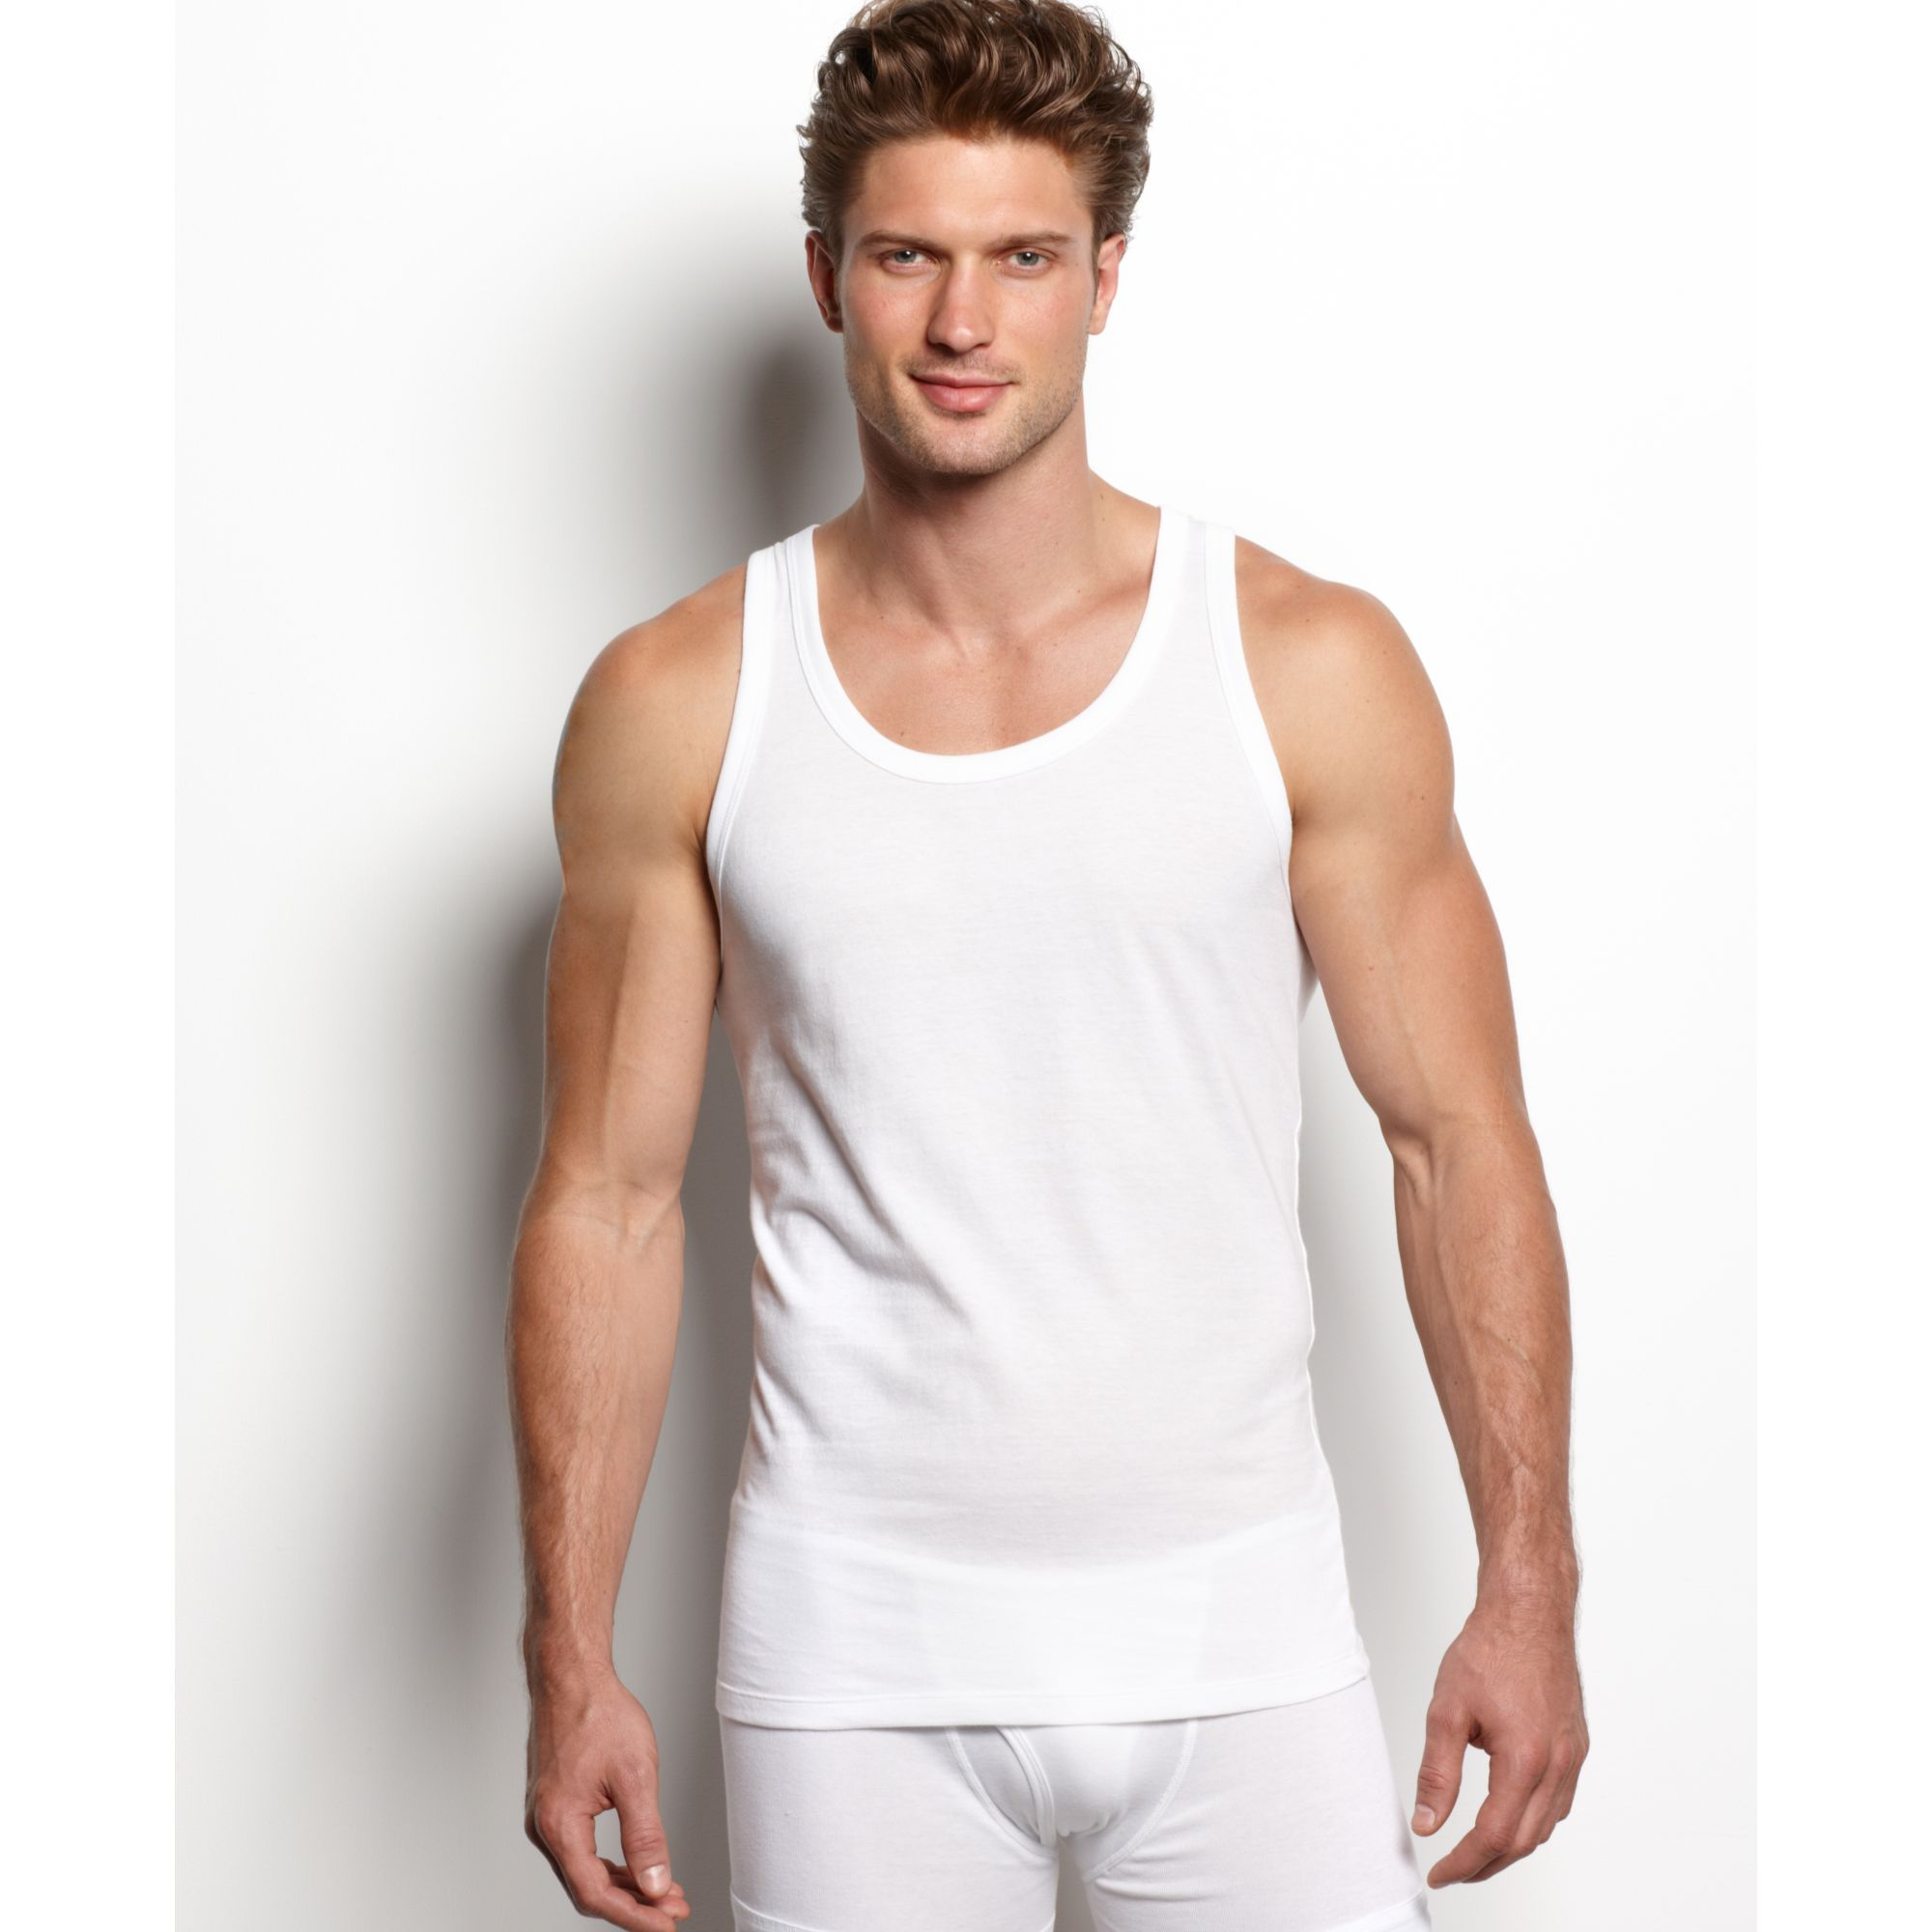 The men's body shaping vest is an innovative base layer that actually slims and streamlines your look while offering support for your body. Free Fast Shipping .